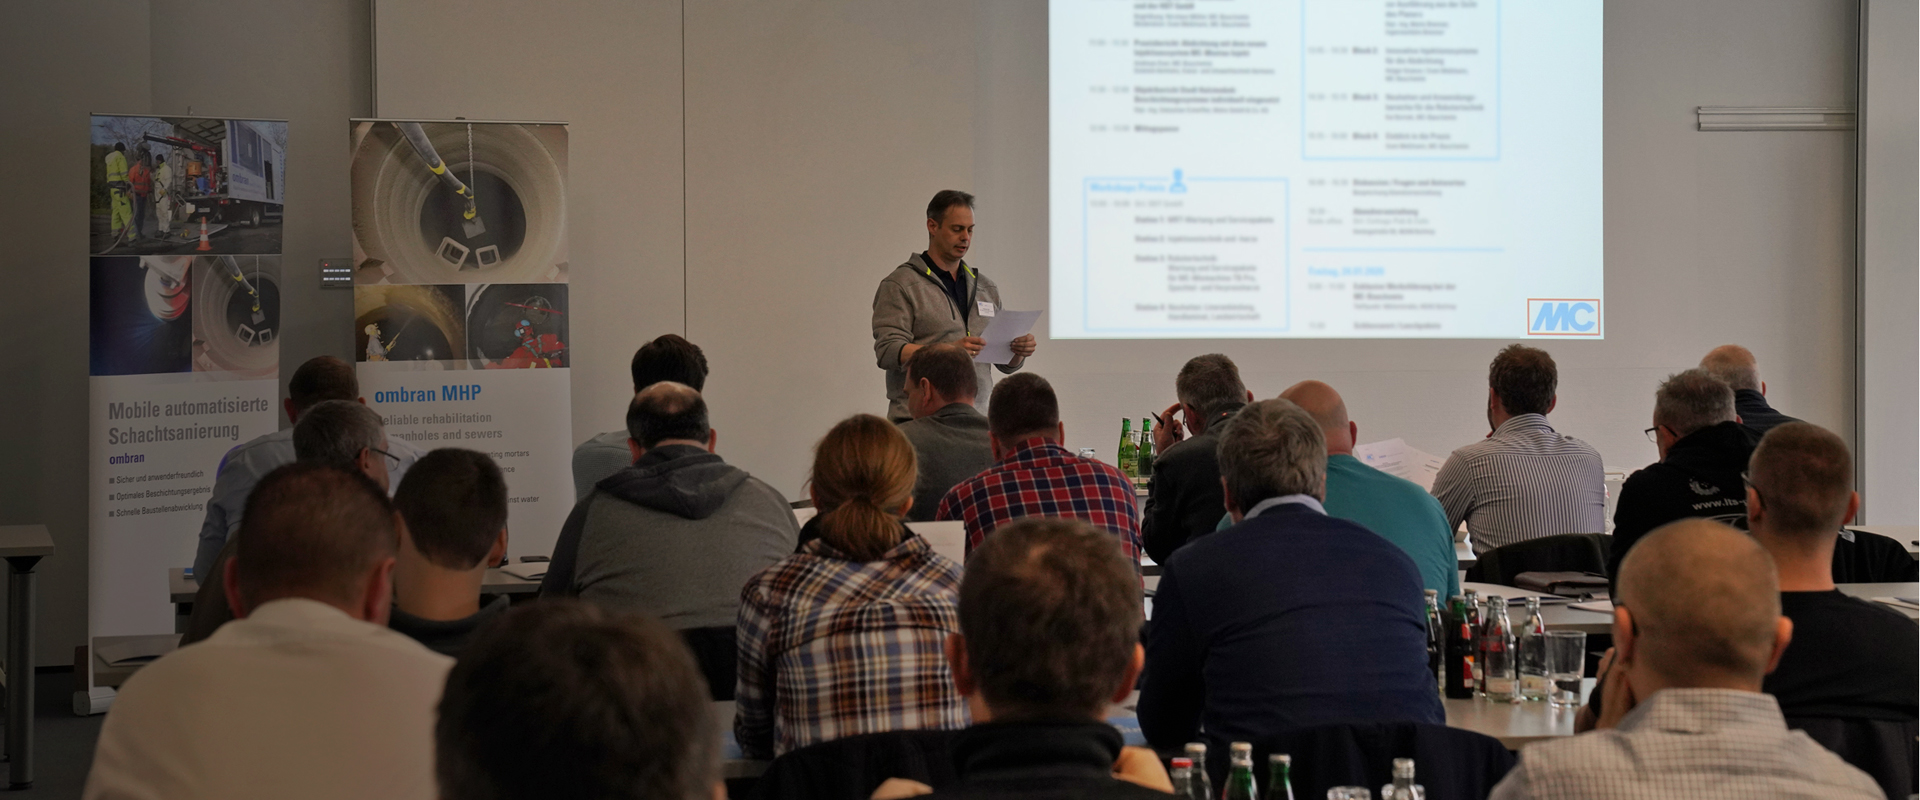 On 23 and 24 January 2020, the ombran division of MC-Bauchemie held the third Ombran Conference at MC-Bauchemie's training centre in Bottrop.